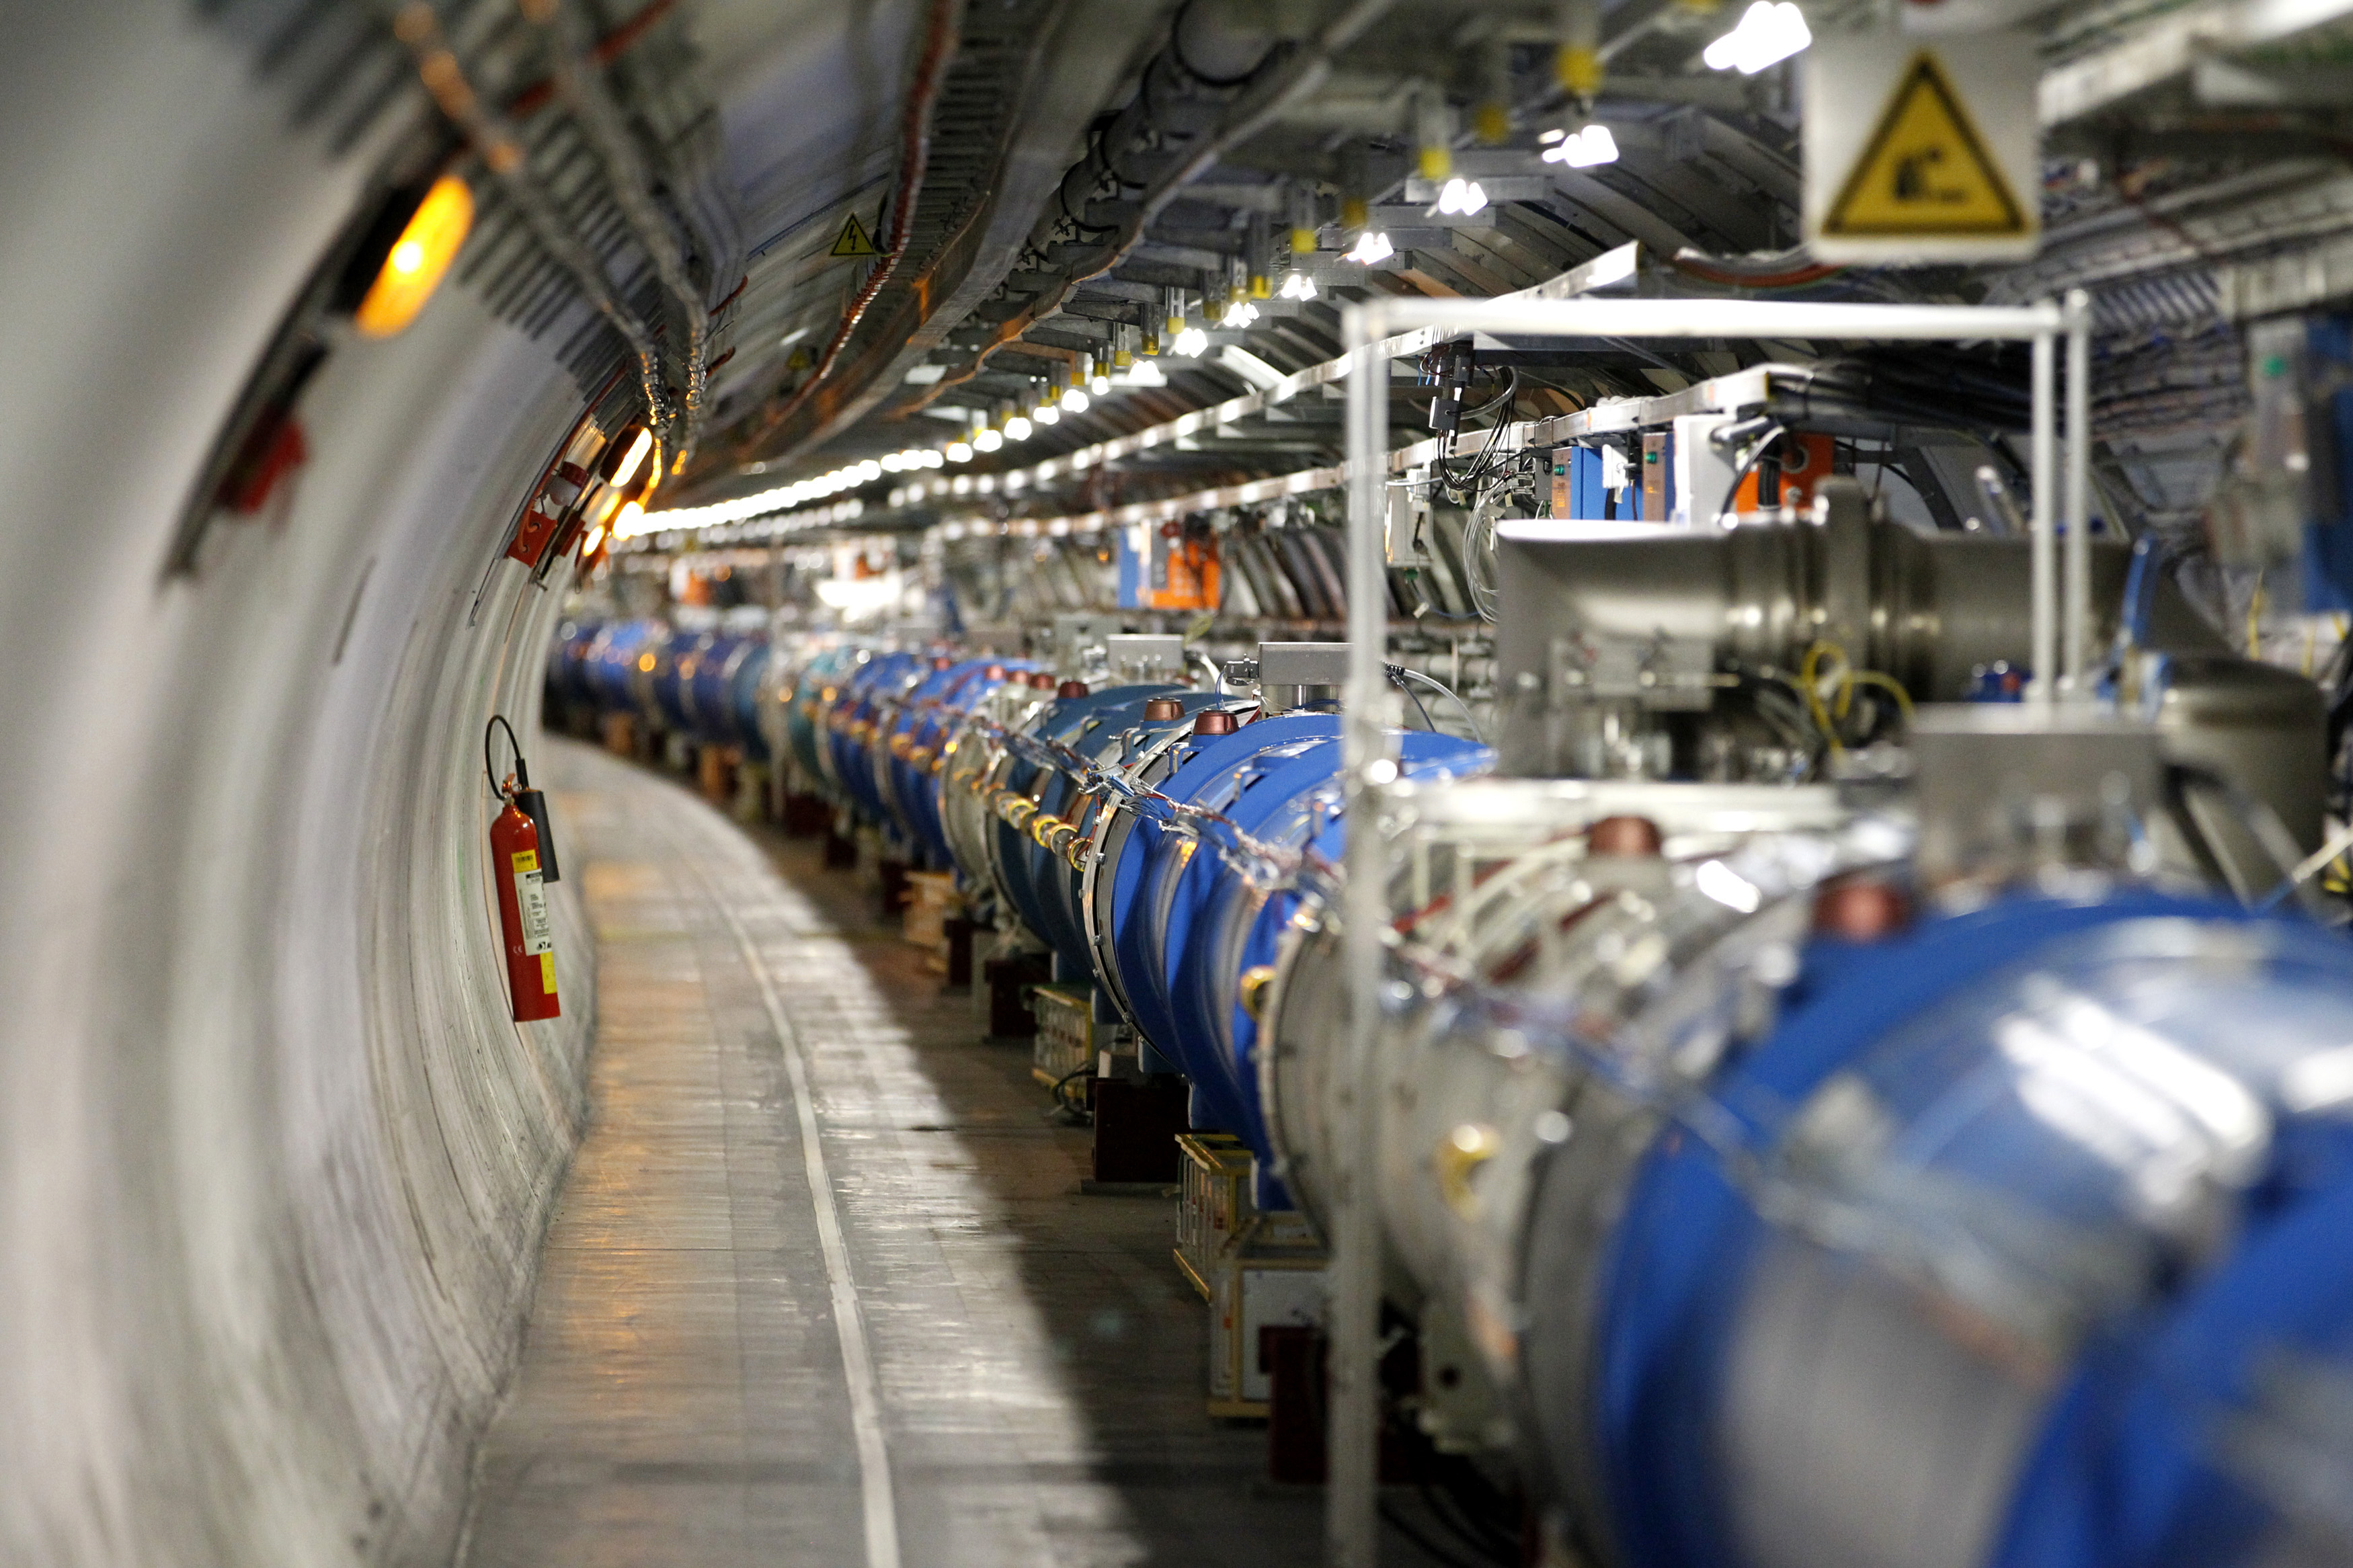 A general view of the LHC experiment as seen at CERN, near Geneva, Switzerland. Credit: Reuters/Pierre Albouy